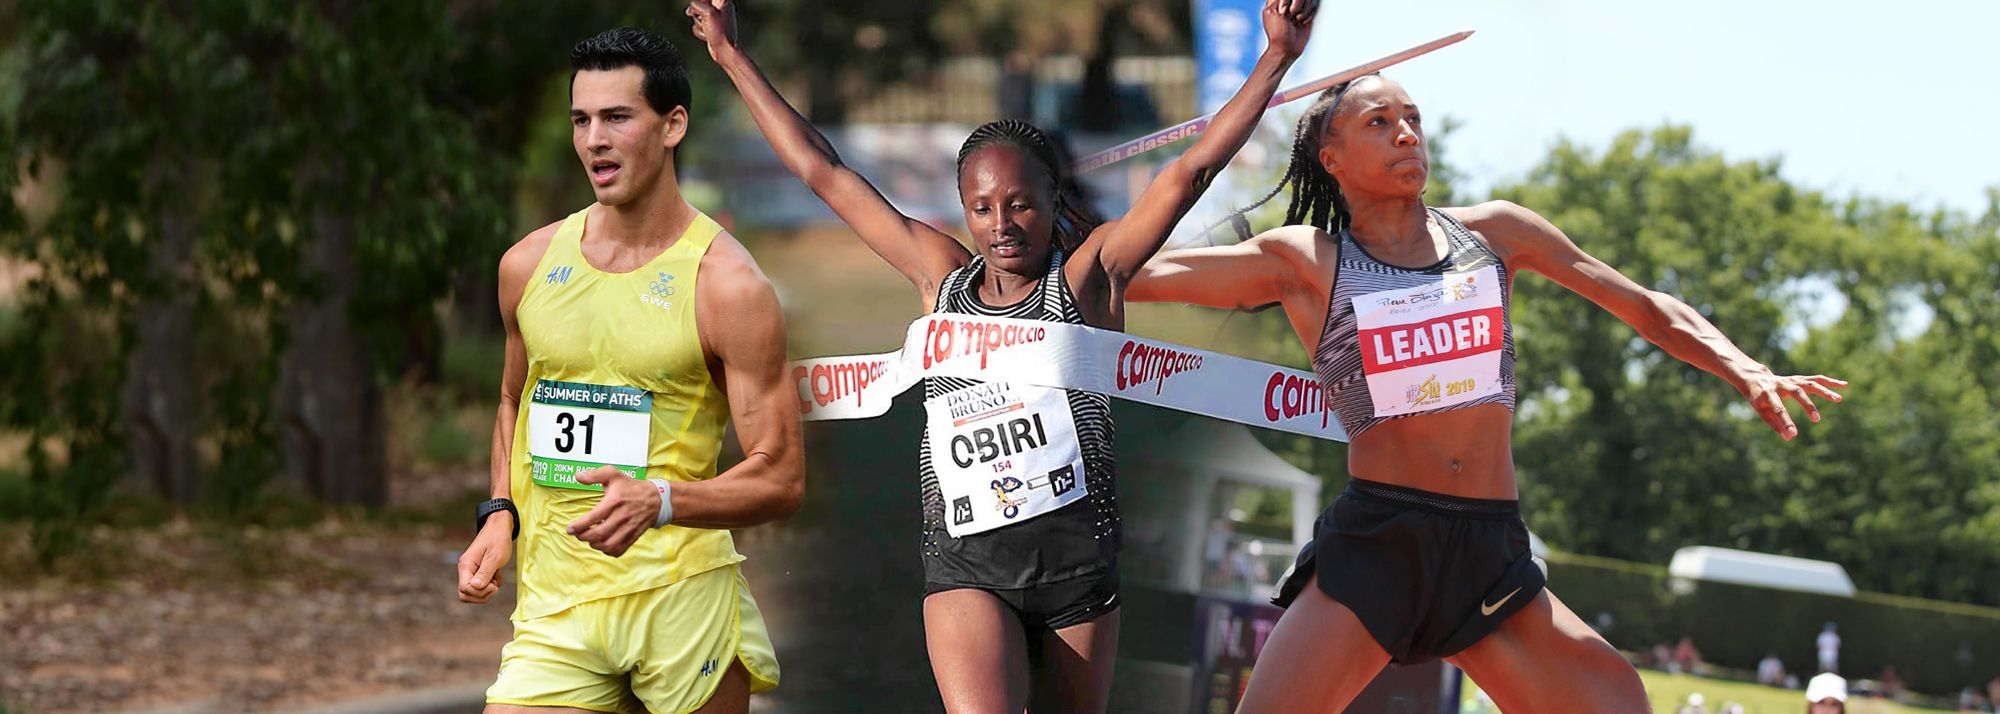 One-day series of the world's best cross country, combined events and race walking meetings will all move to a three-tier World Tour format